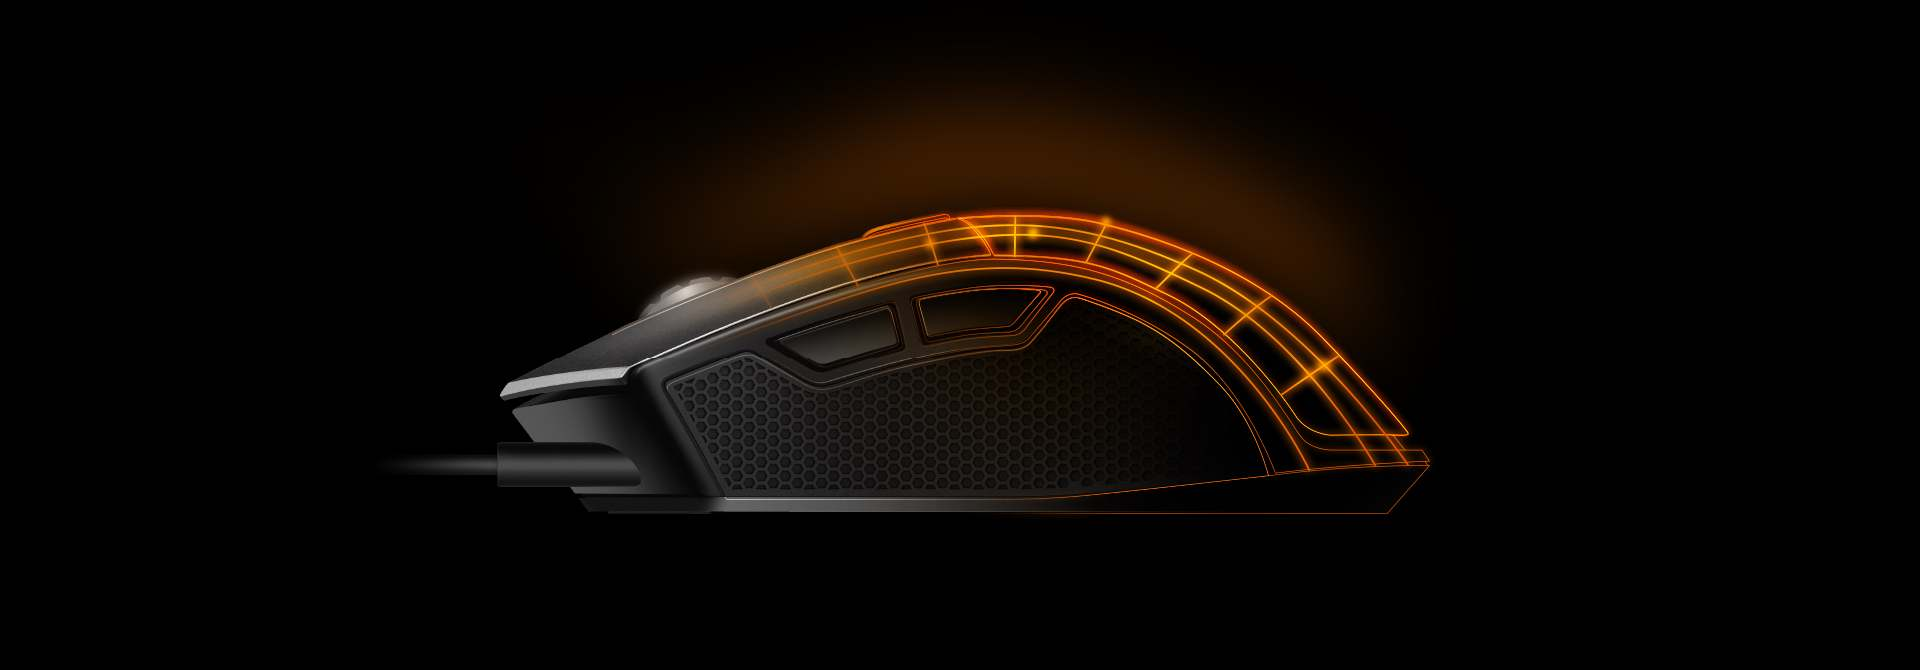 Cougar REVENGER S The Ultimate FPS Mouse​ 17